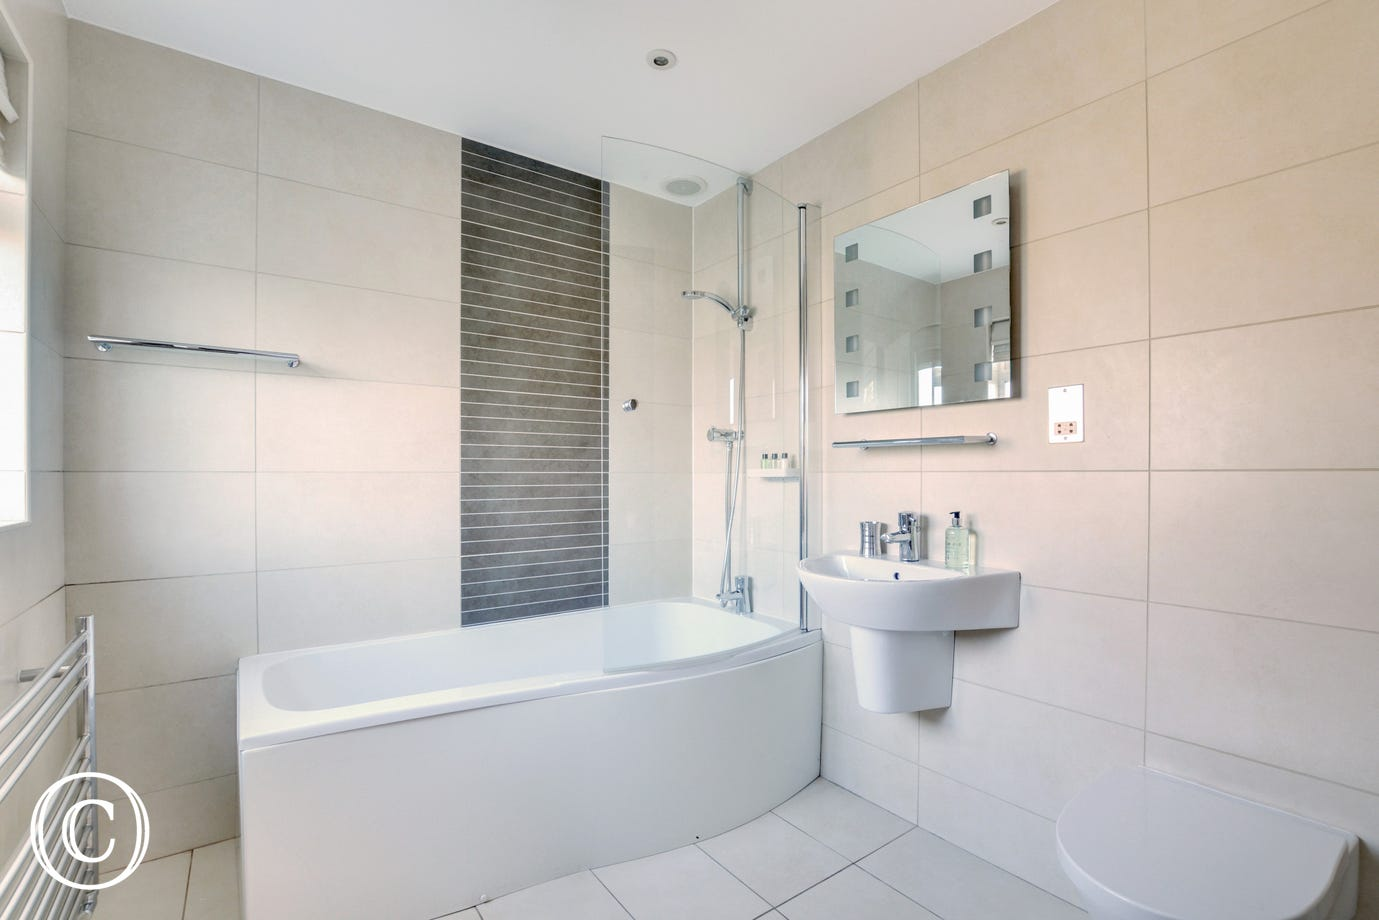 The spacious ensuite bathroom